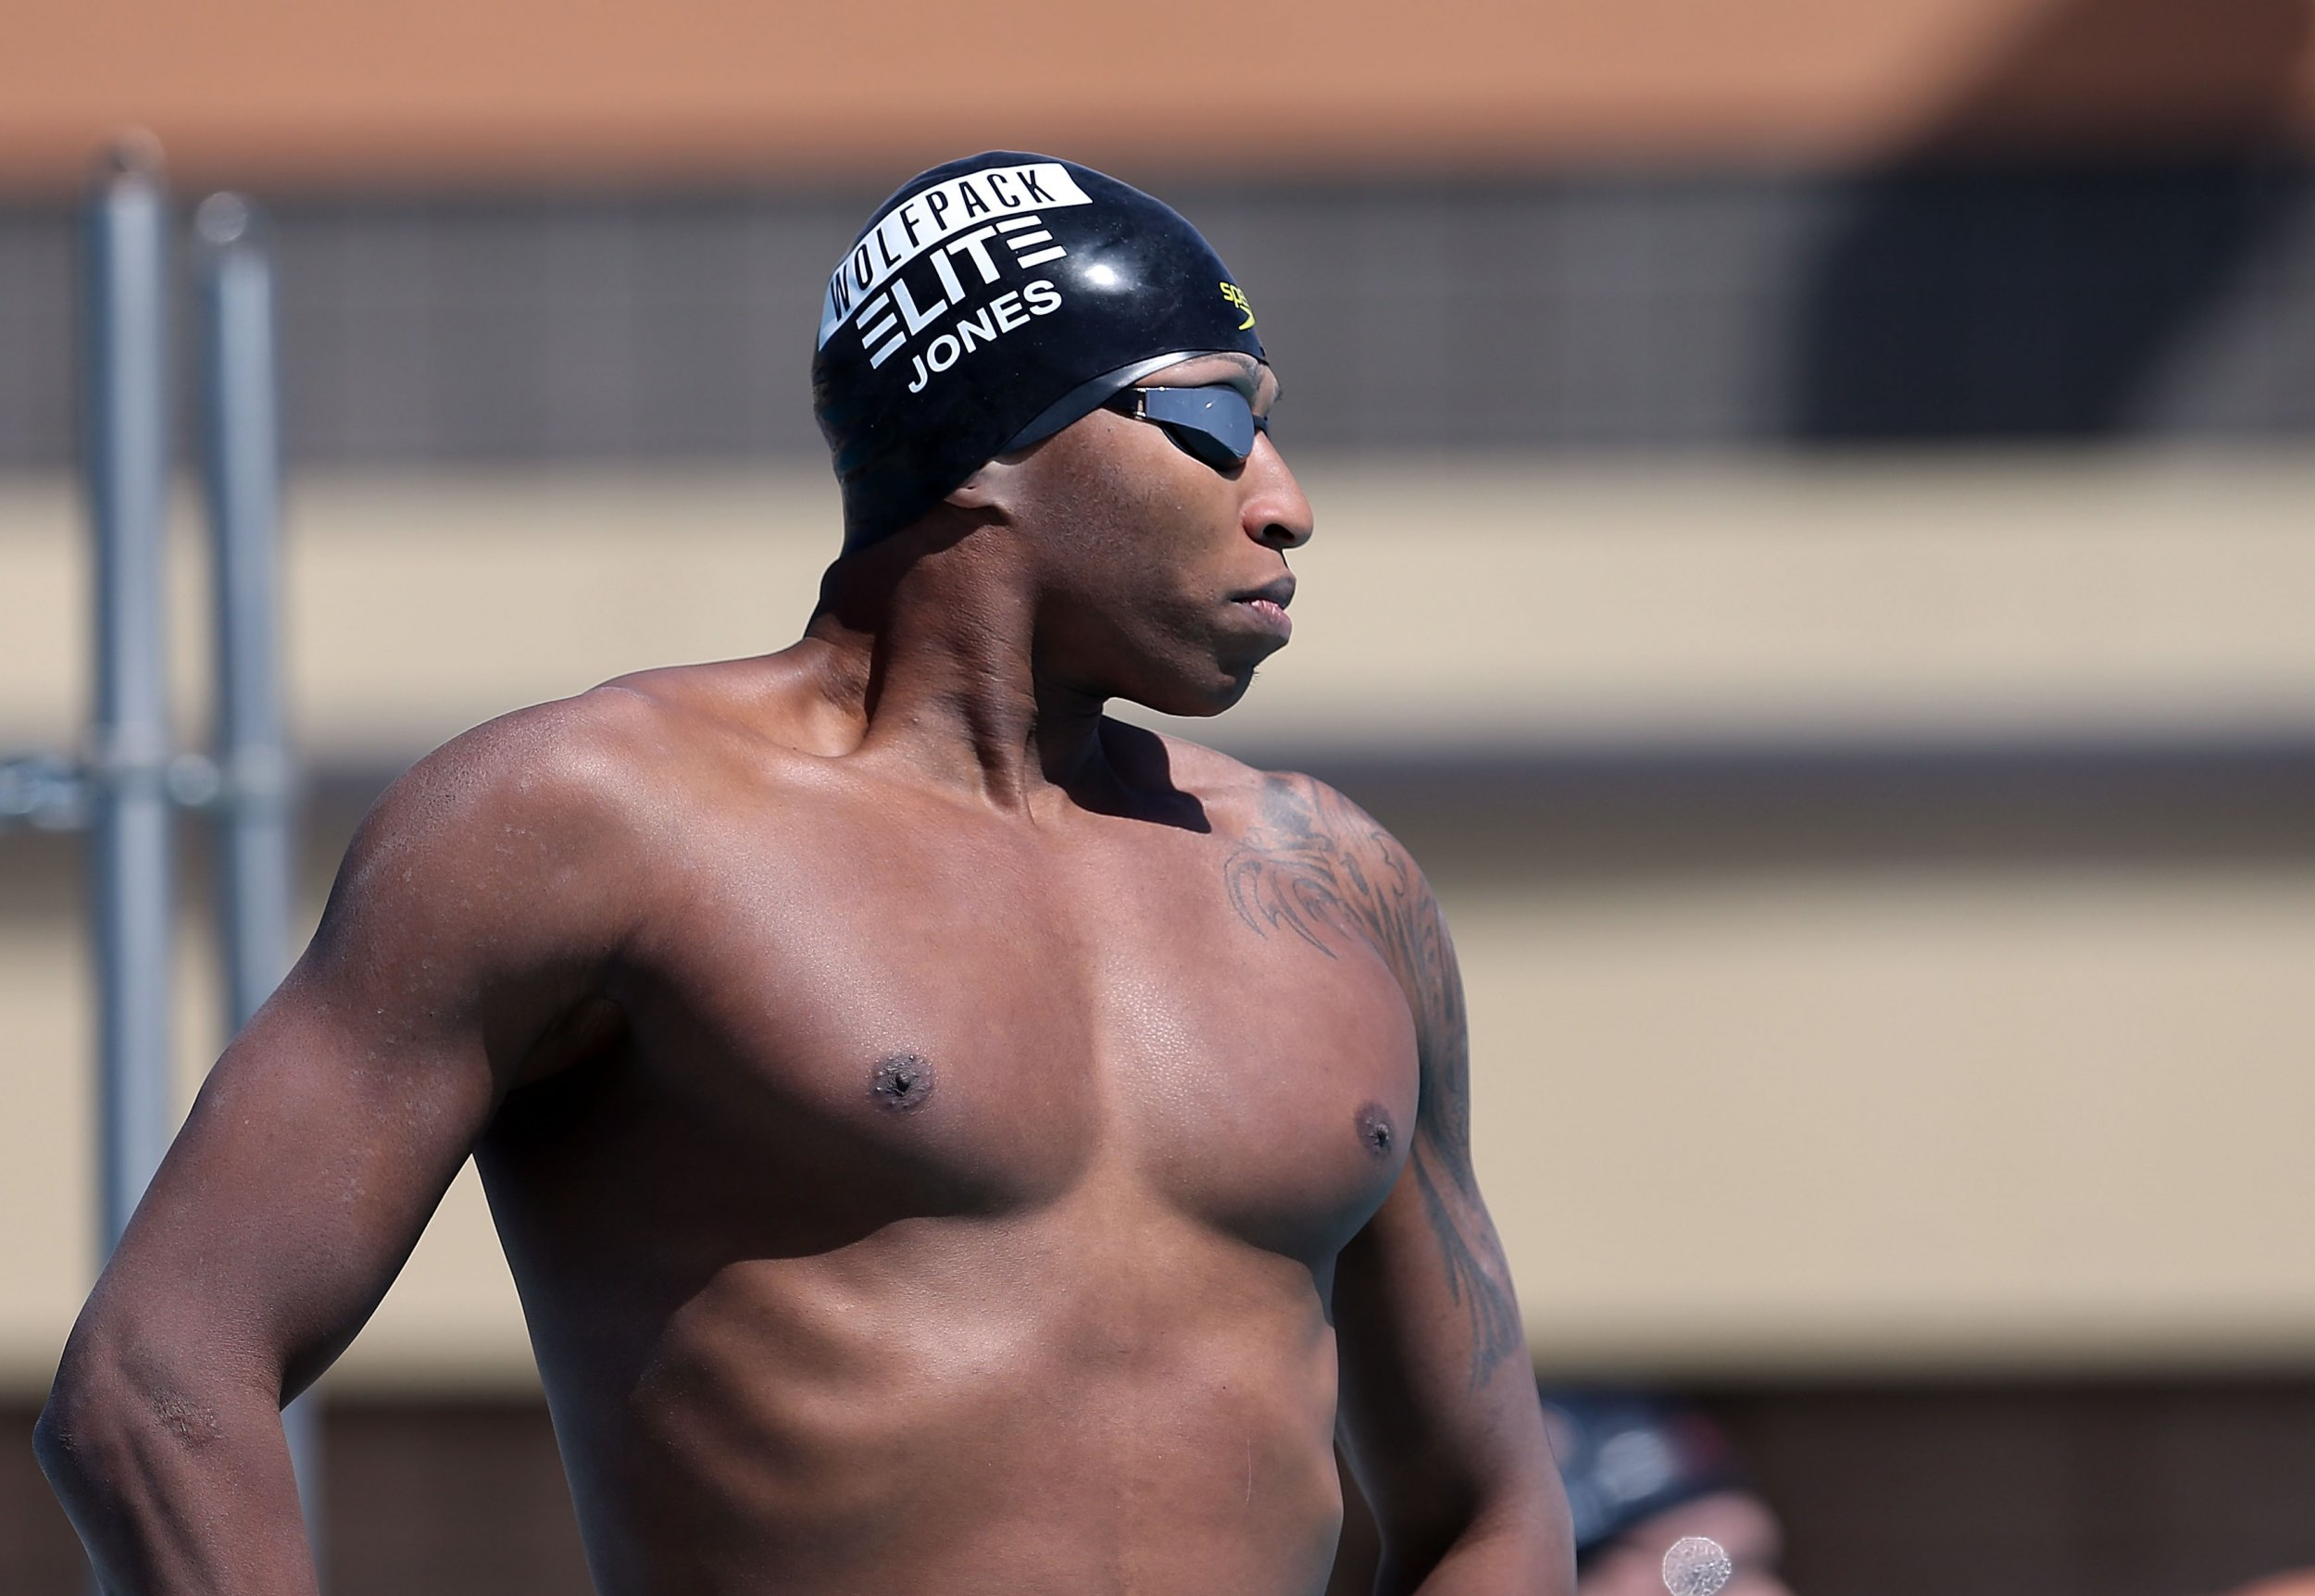 Olympian Cullen Jones Offers Swim Lessons to Defeat Stereotype 'Black People Don't Swim'